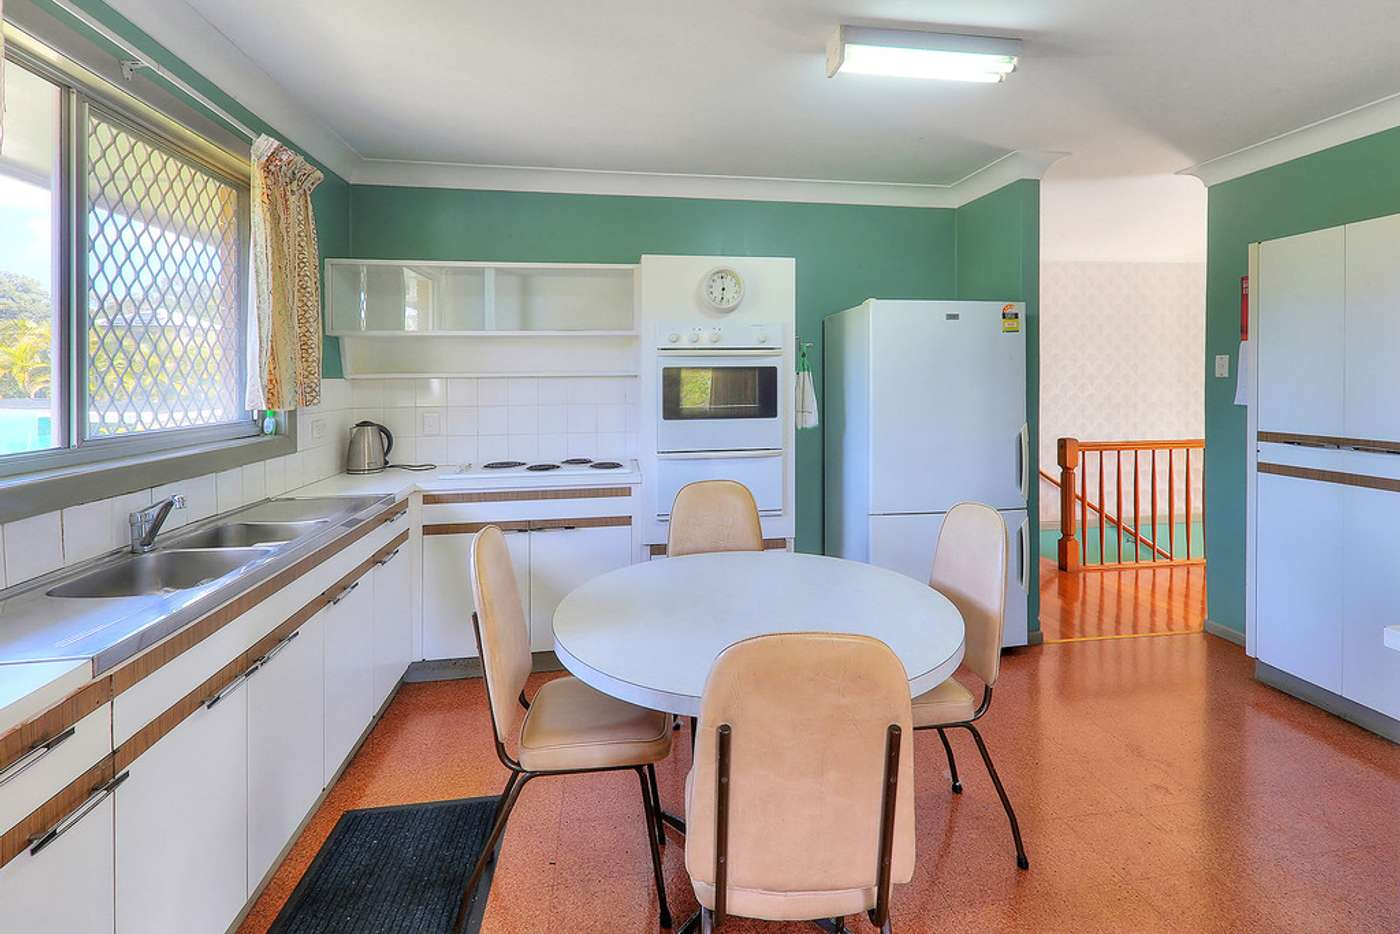 Fifth view of Homely house listing, 101 Windmill St, Tarragindi QLD 4121